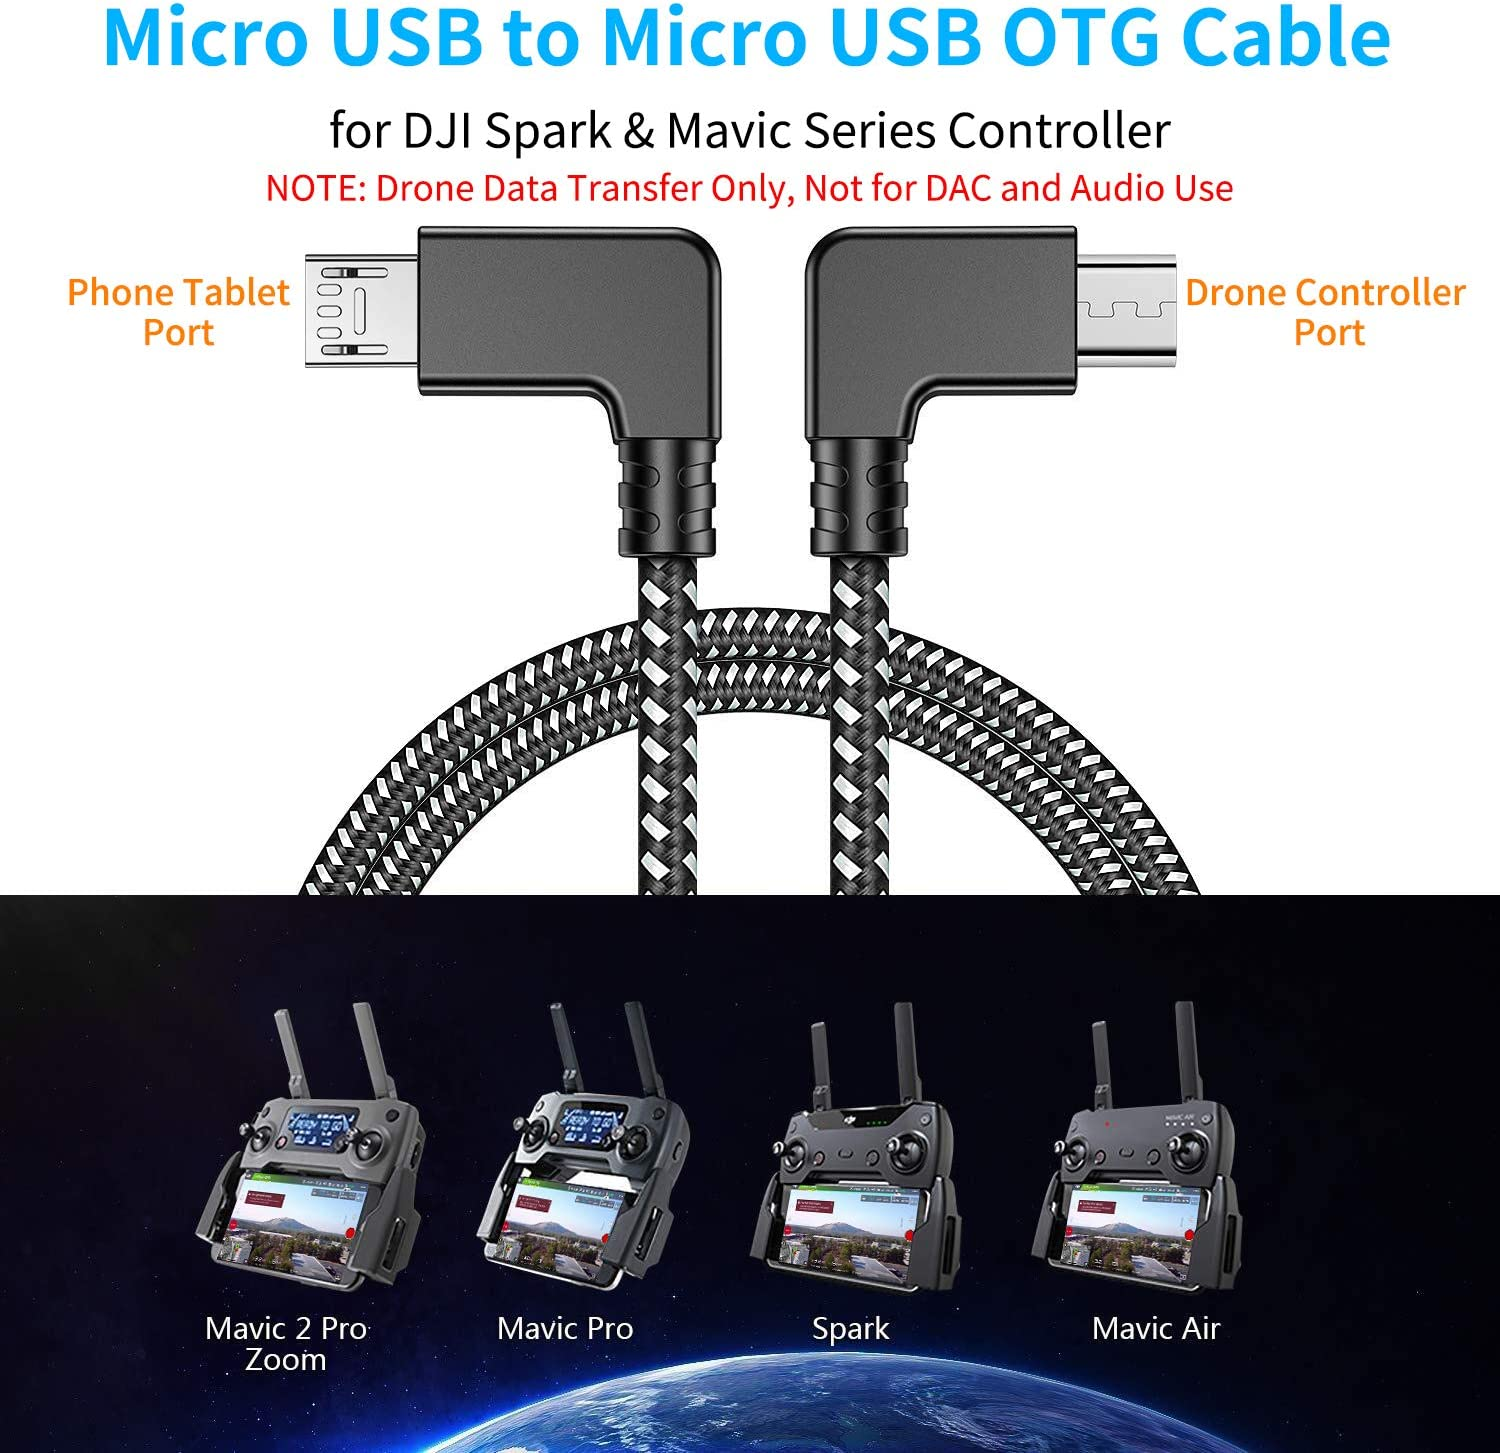 PRO OTG Cable Works for Asus ZC600KL Right Angle Cable Connects You to Any Compatible USB Device with MicroUSB Cable!